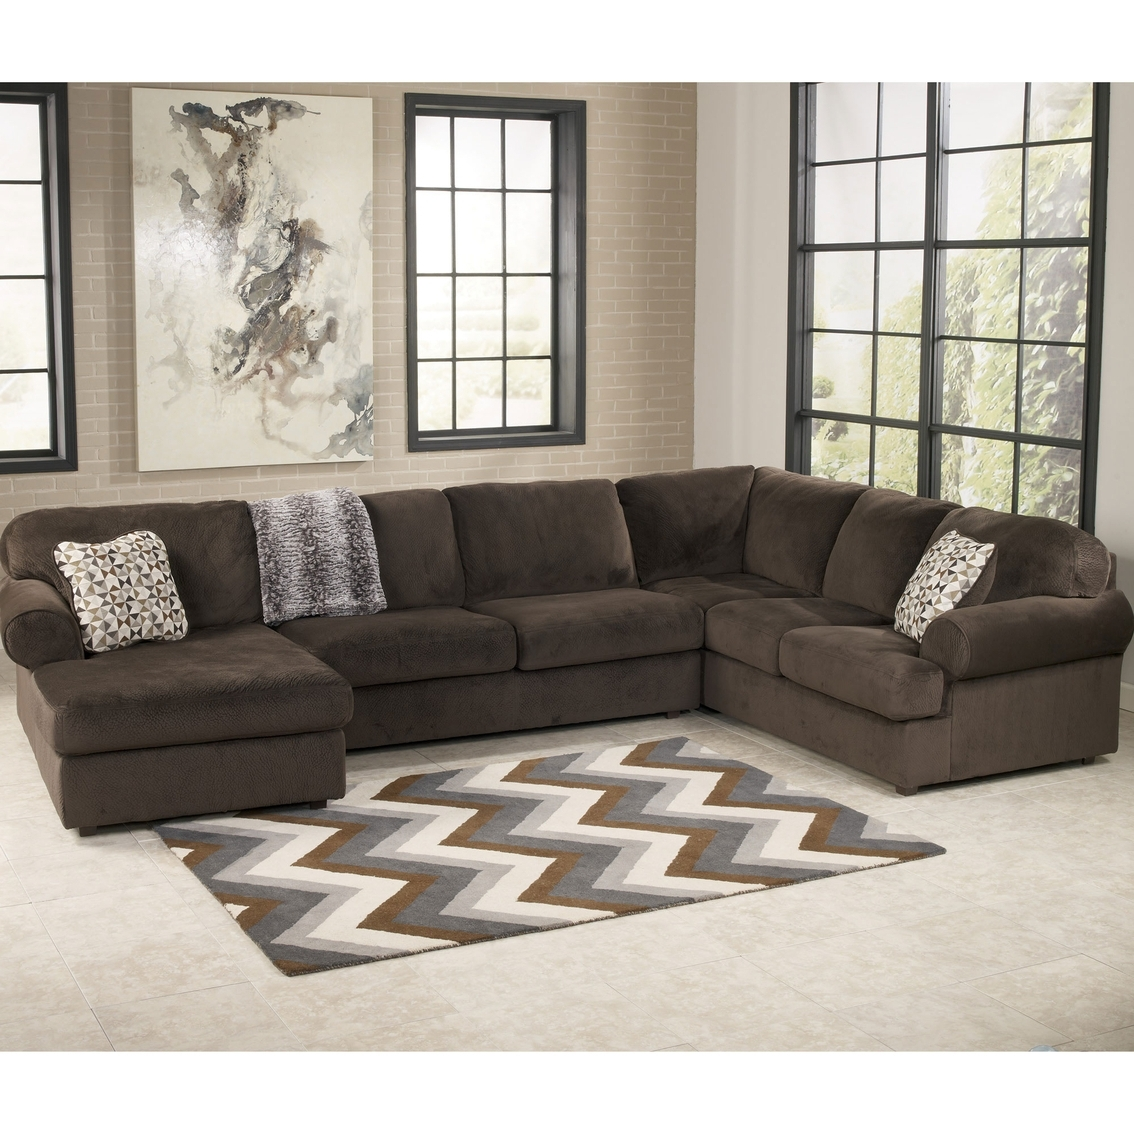 Austin Sectional Sofas In Most Up To Date Signature Designashley Jessa Place 3 Pc (View 6 of 15)